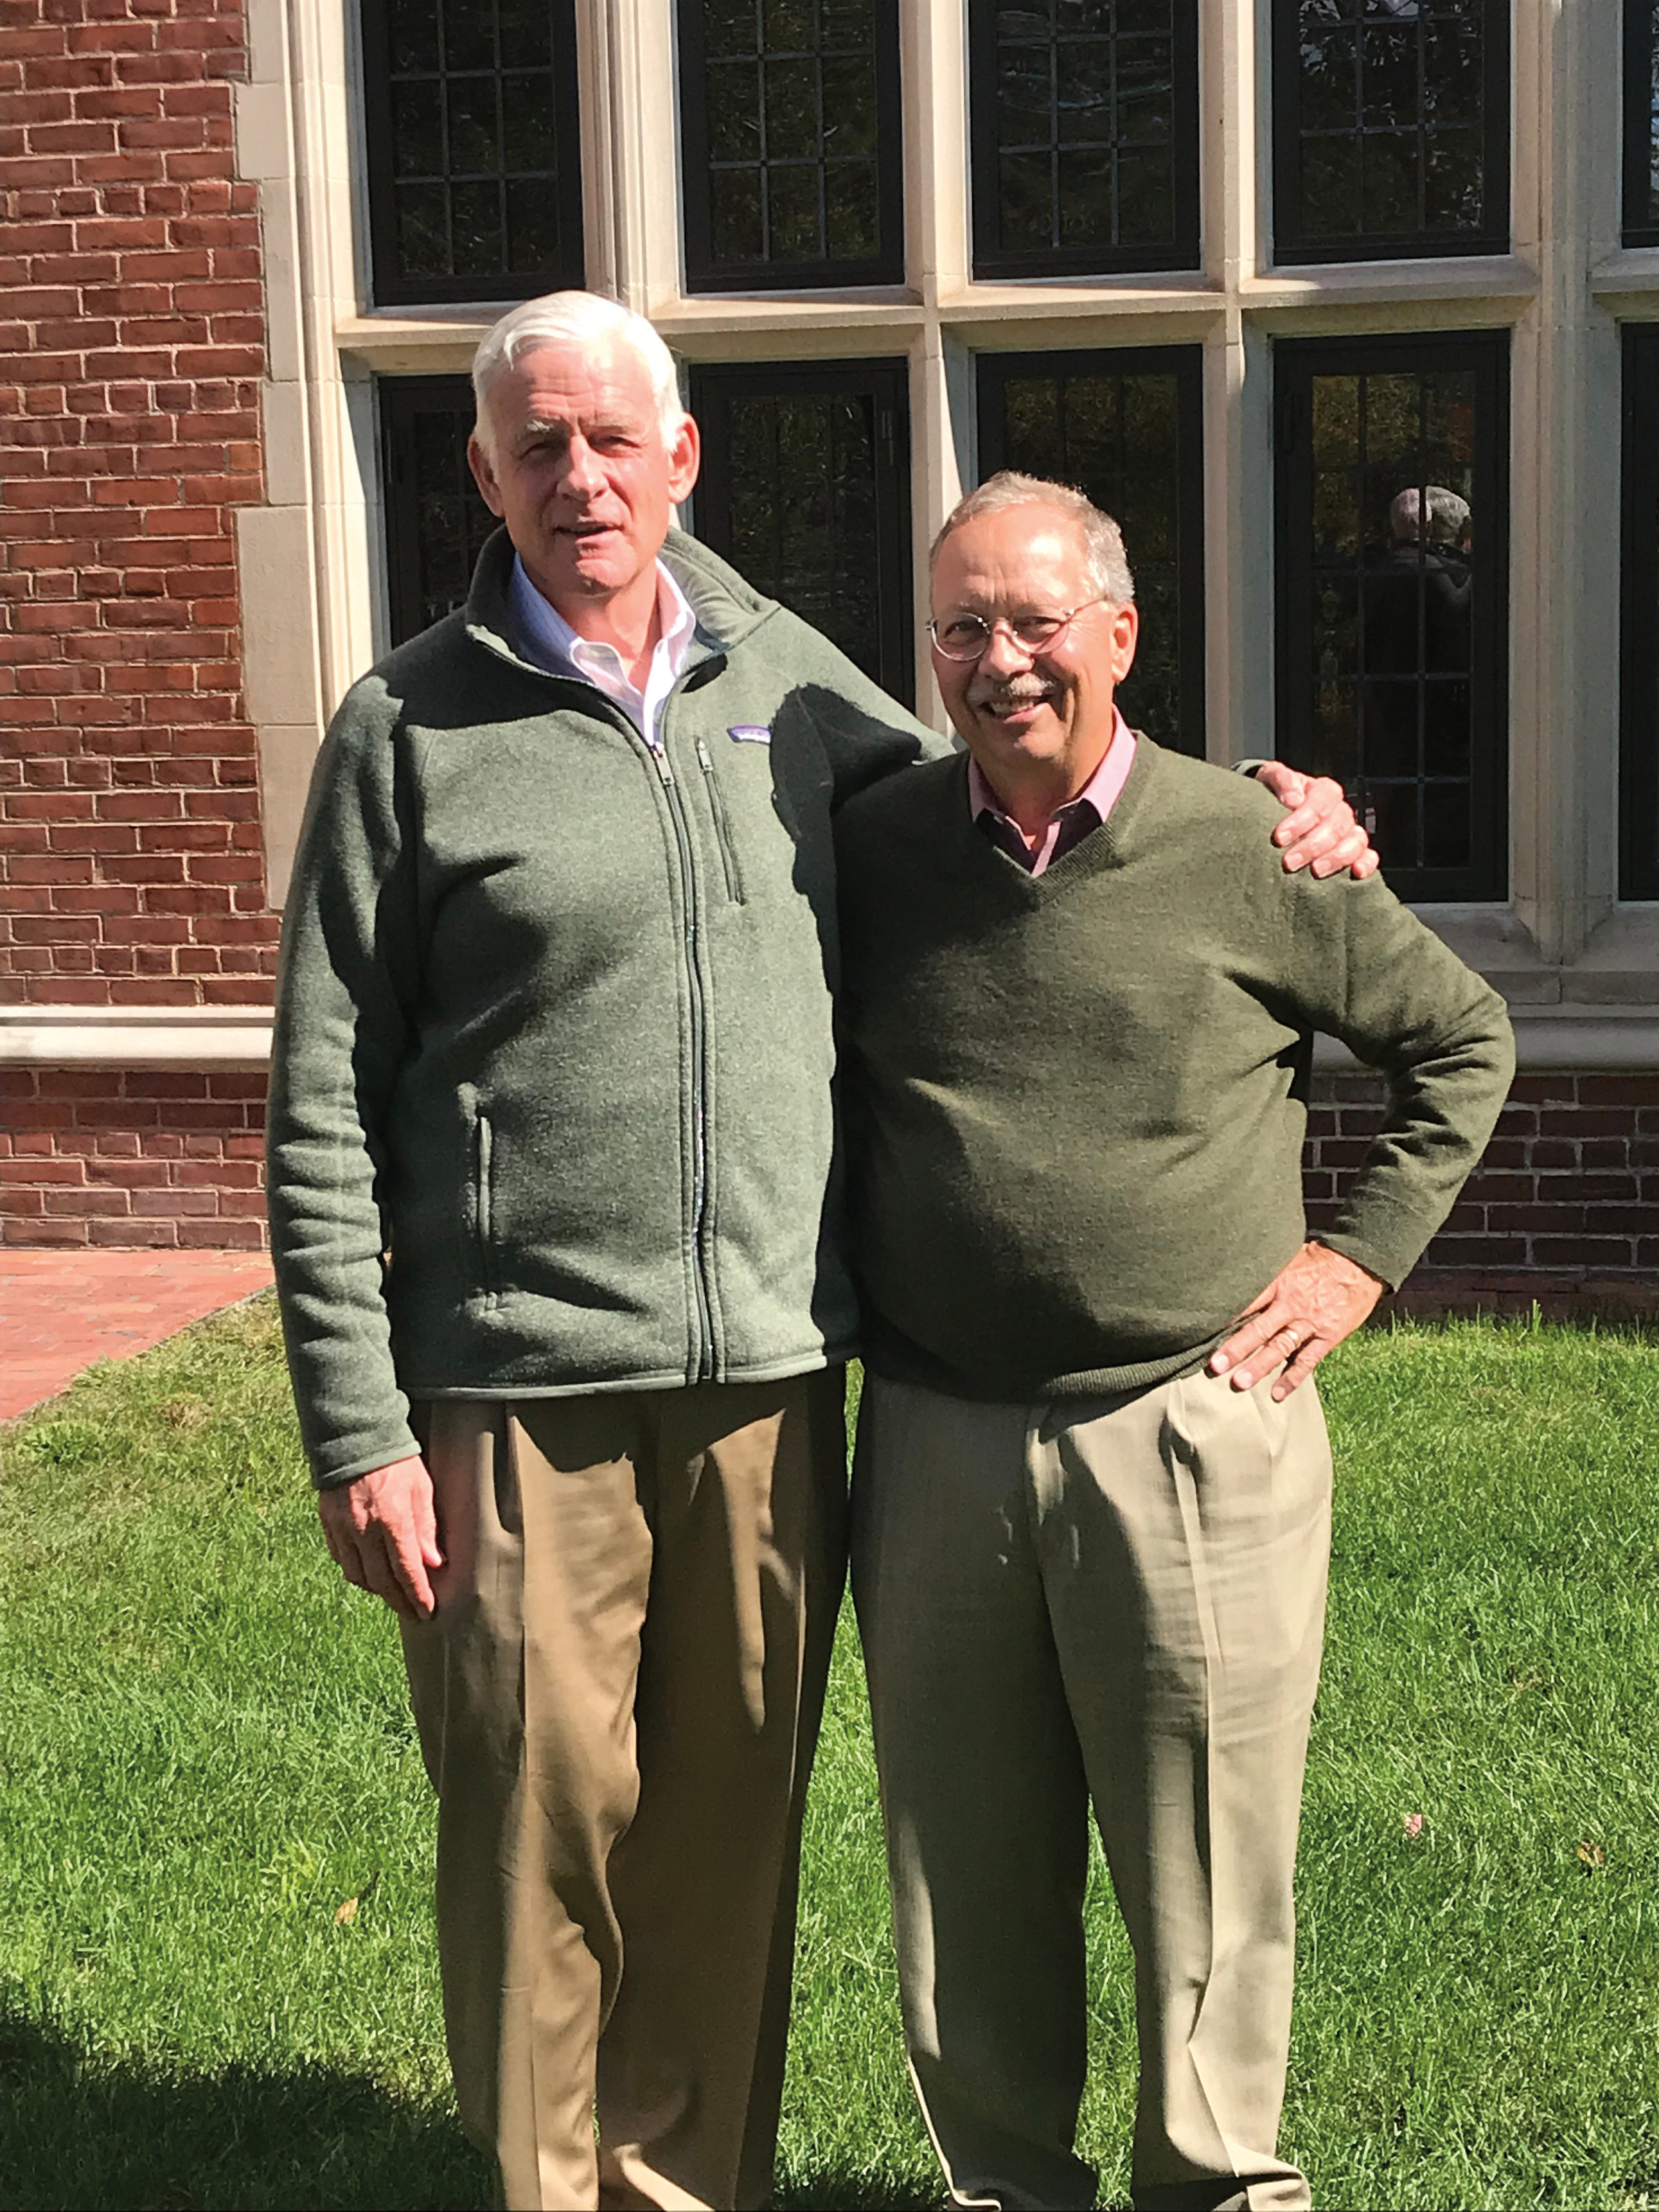 Formmates Richard Woodville '66 (l.) and Hugh Clark at SPS in Action weekend.